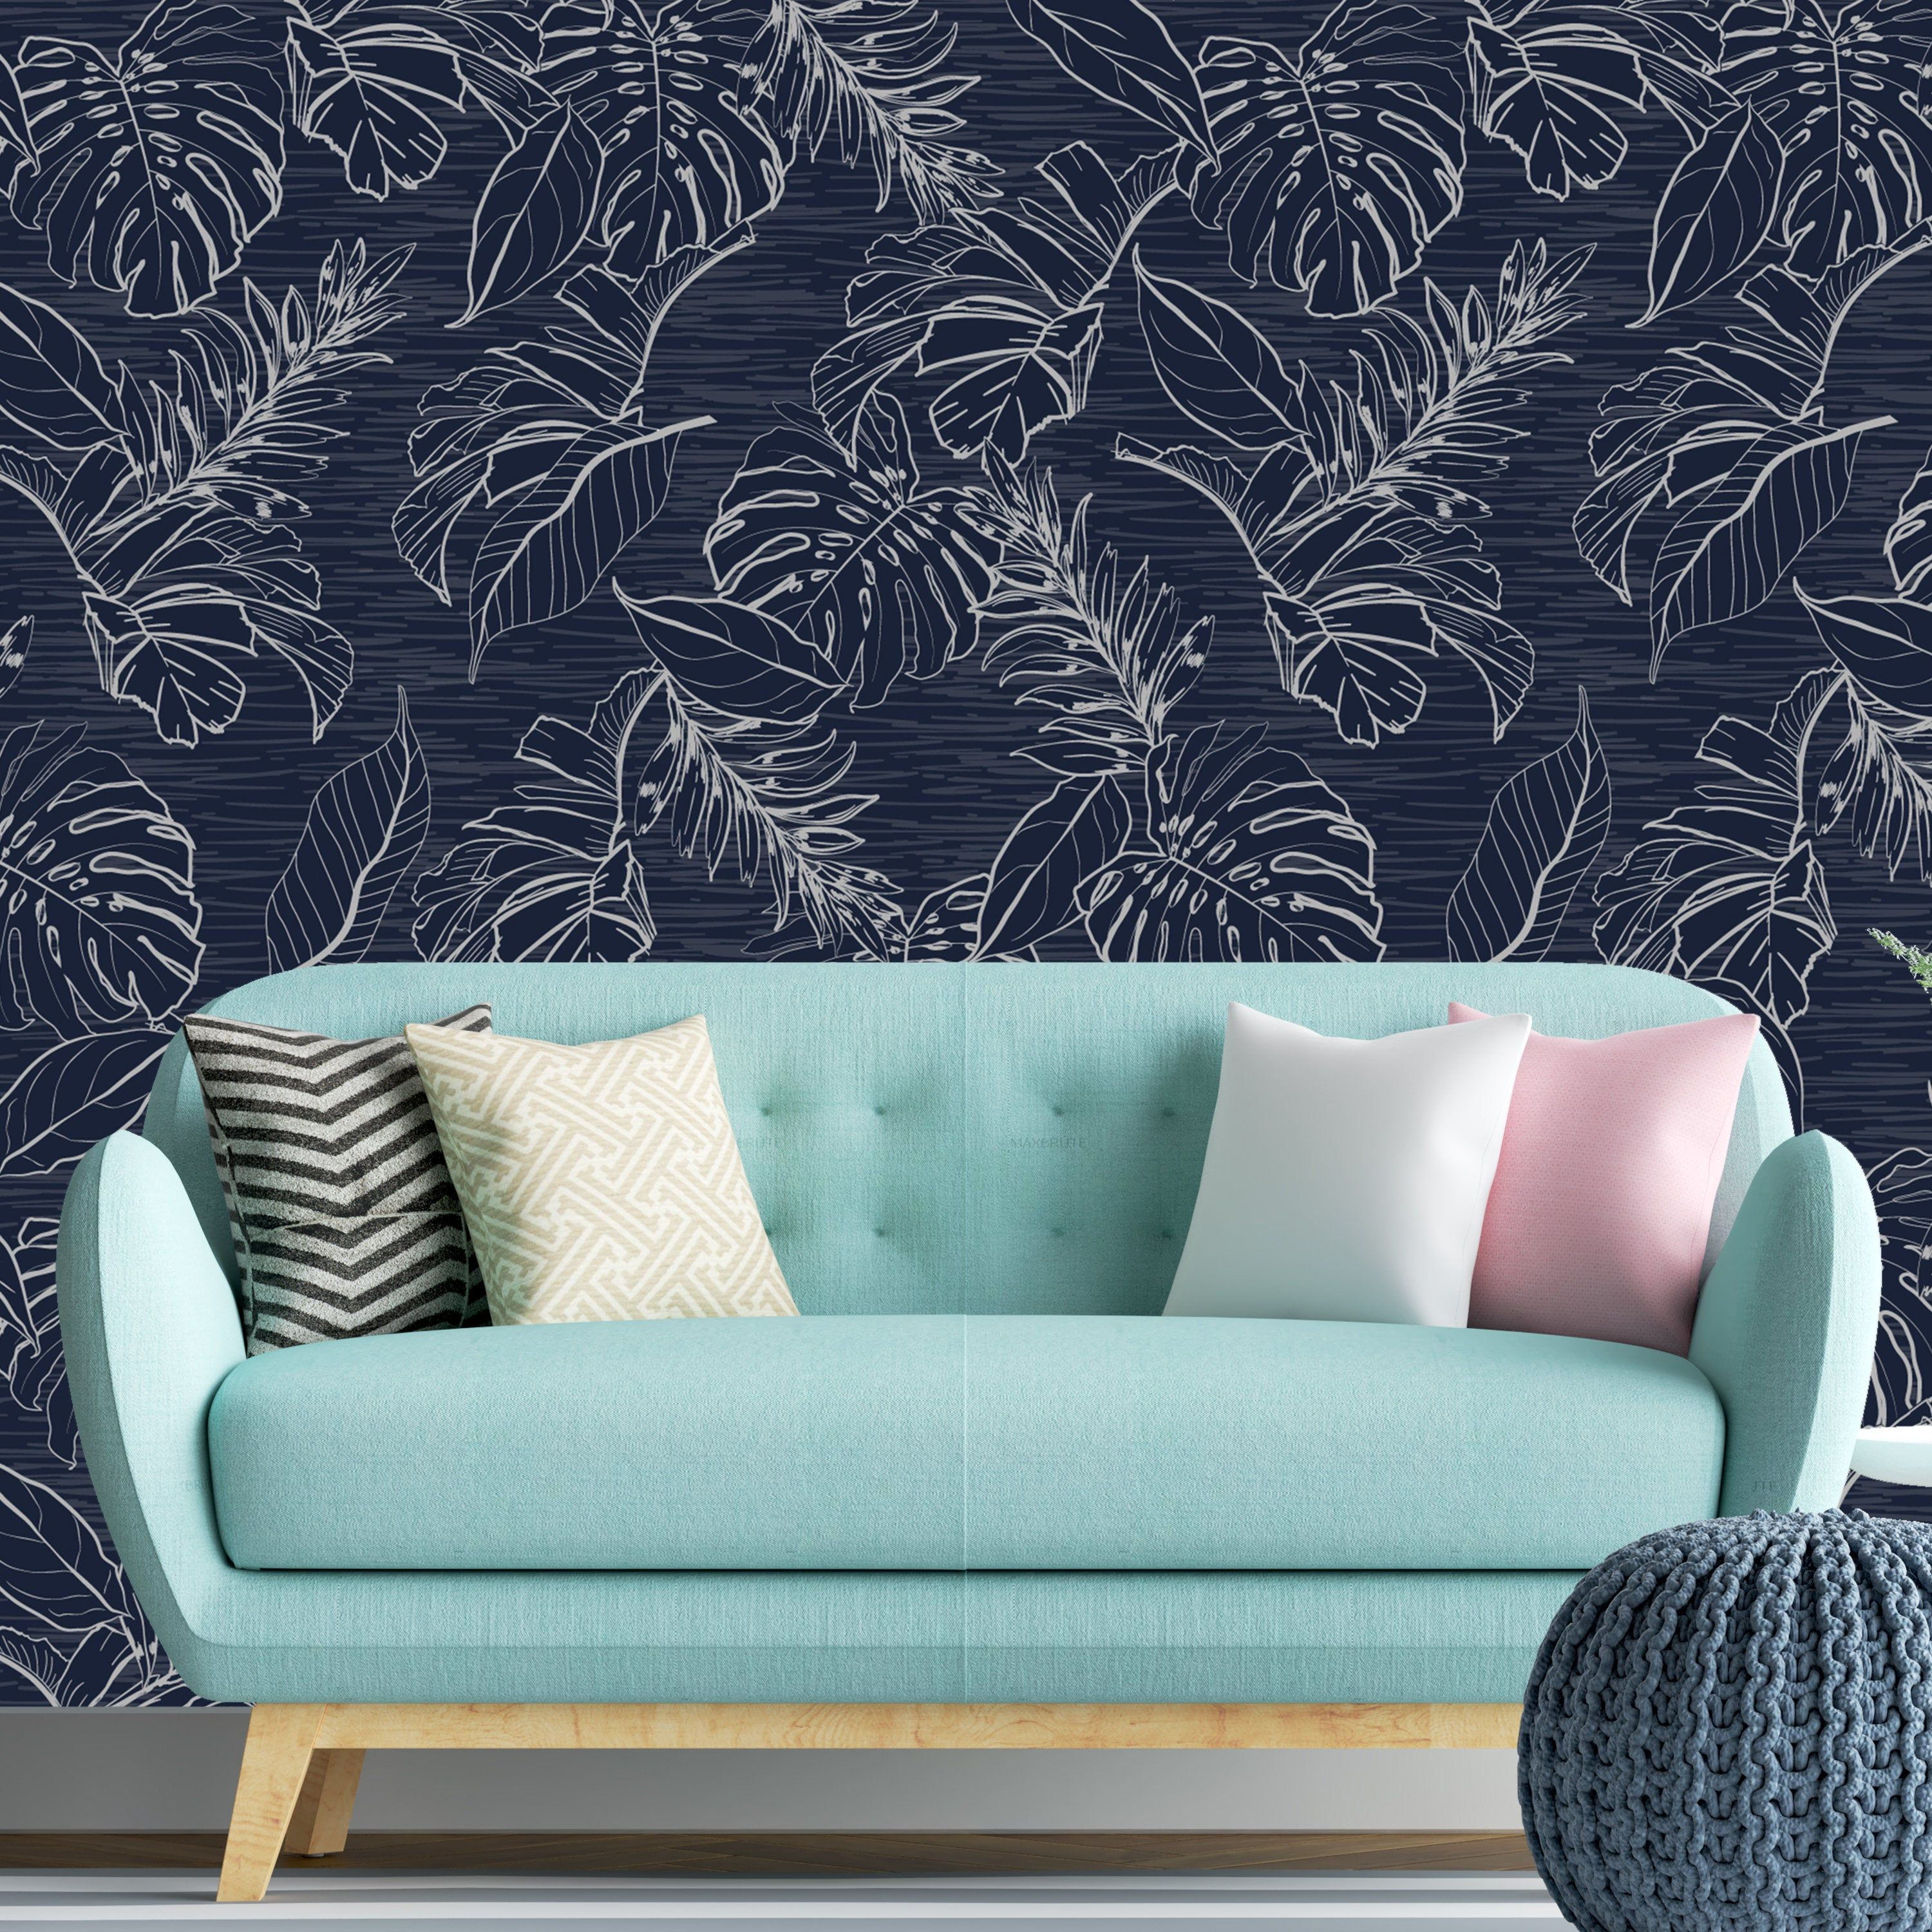 Peel And Stick Removable Wallpaper Dark Blue Monotone Etsy Accent Wall Removable Wallpaper Indoor Air Quality